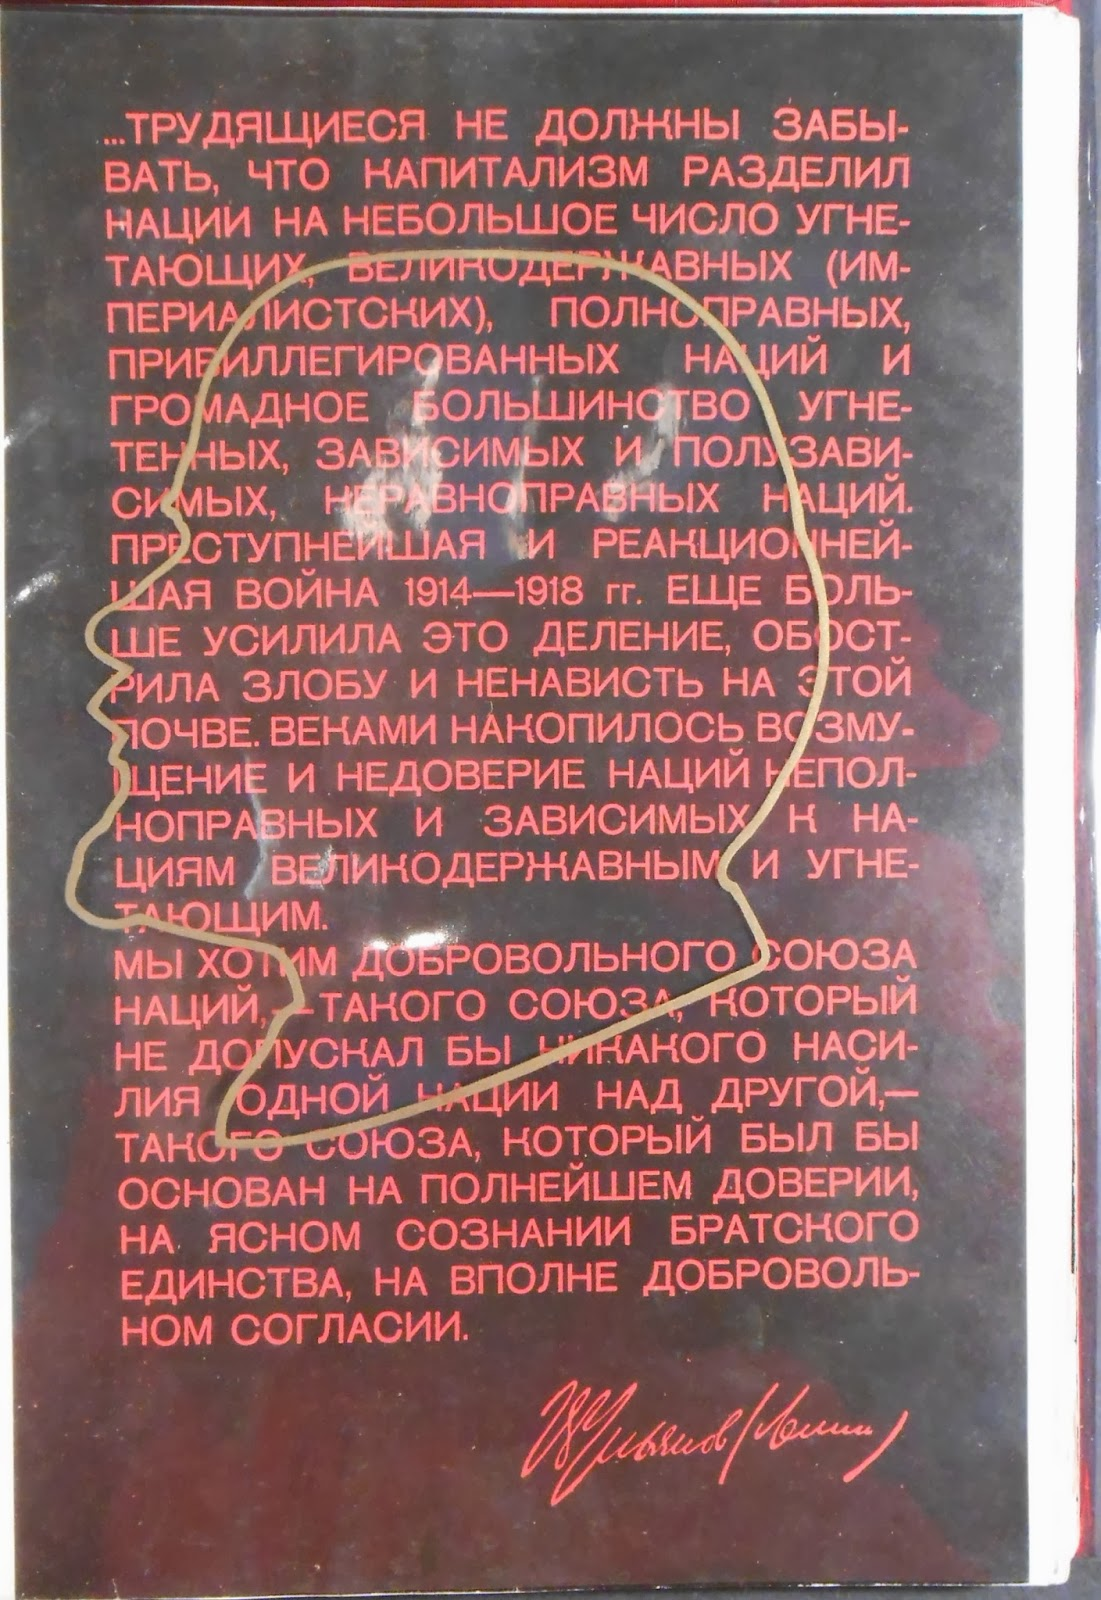 The outline of a profile in front of a block of red Cyrillic text.